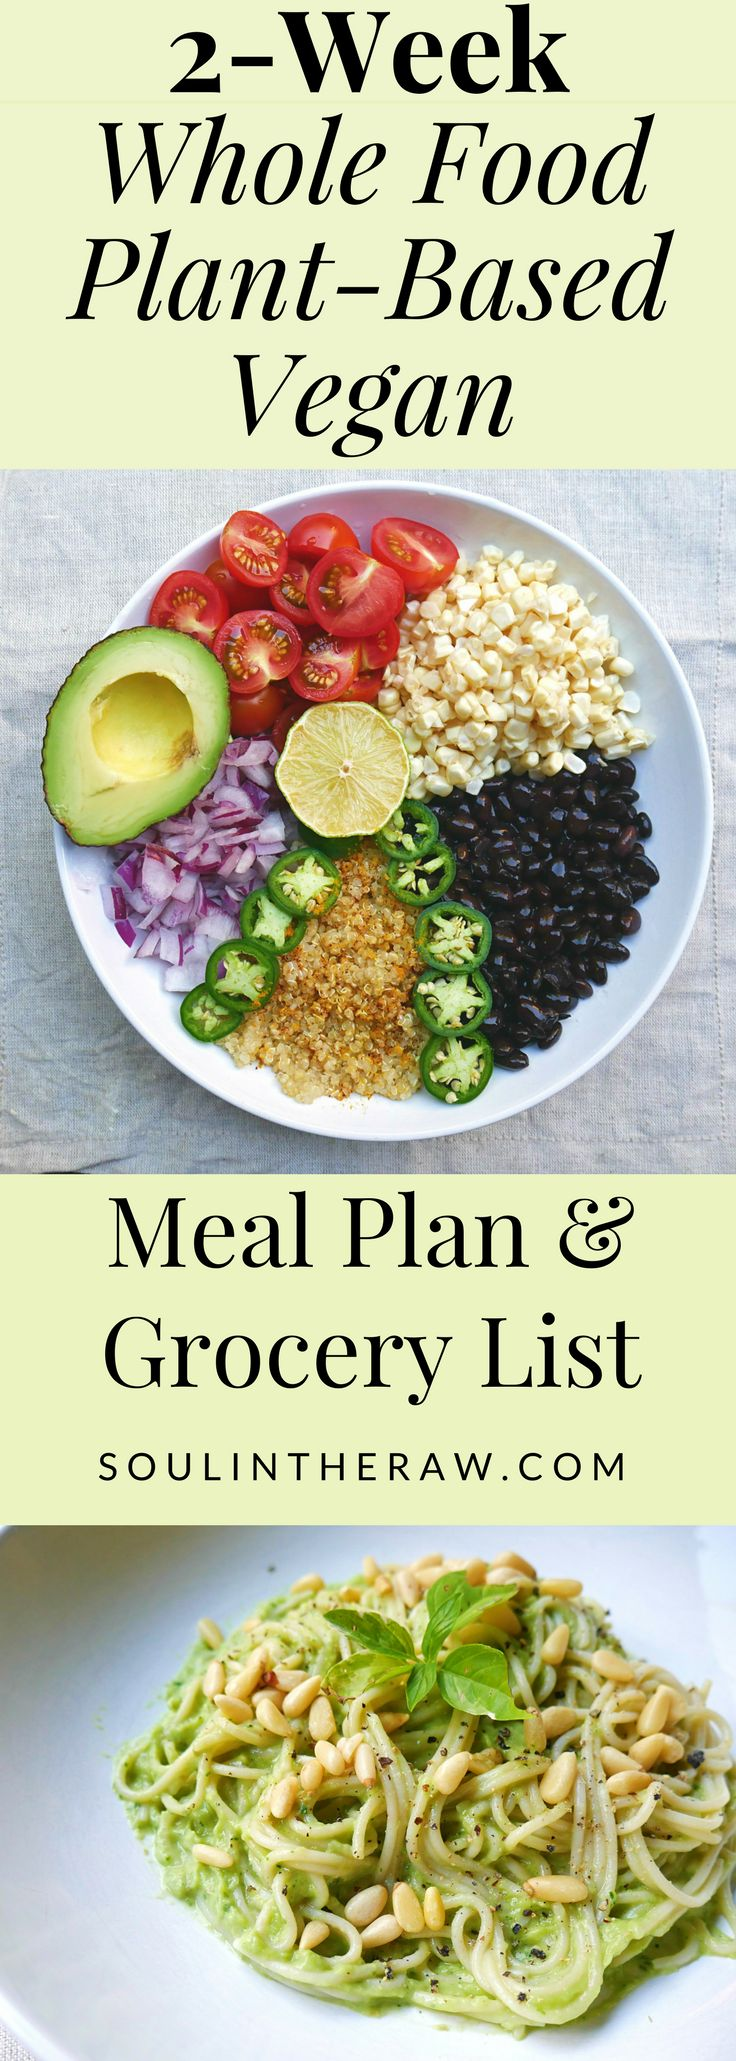 Best 25 whole food recipes ideas on pinterest whole 30 recipes best 25 whole food recipes ideas on pinterest whole 30 recipes paleo meal prep and healthy meal prep forumfinder Choice Image